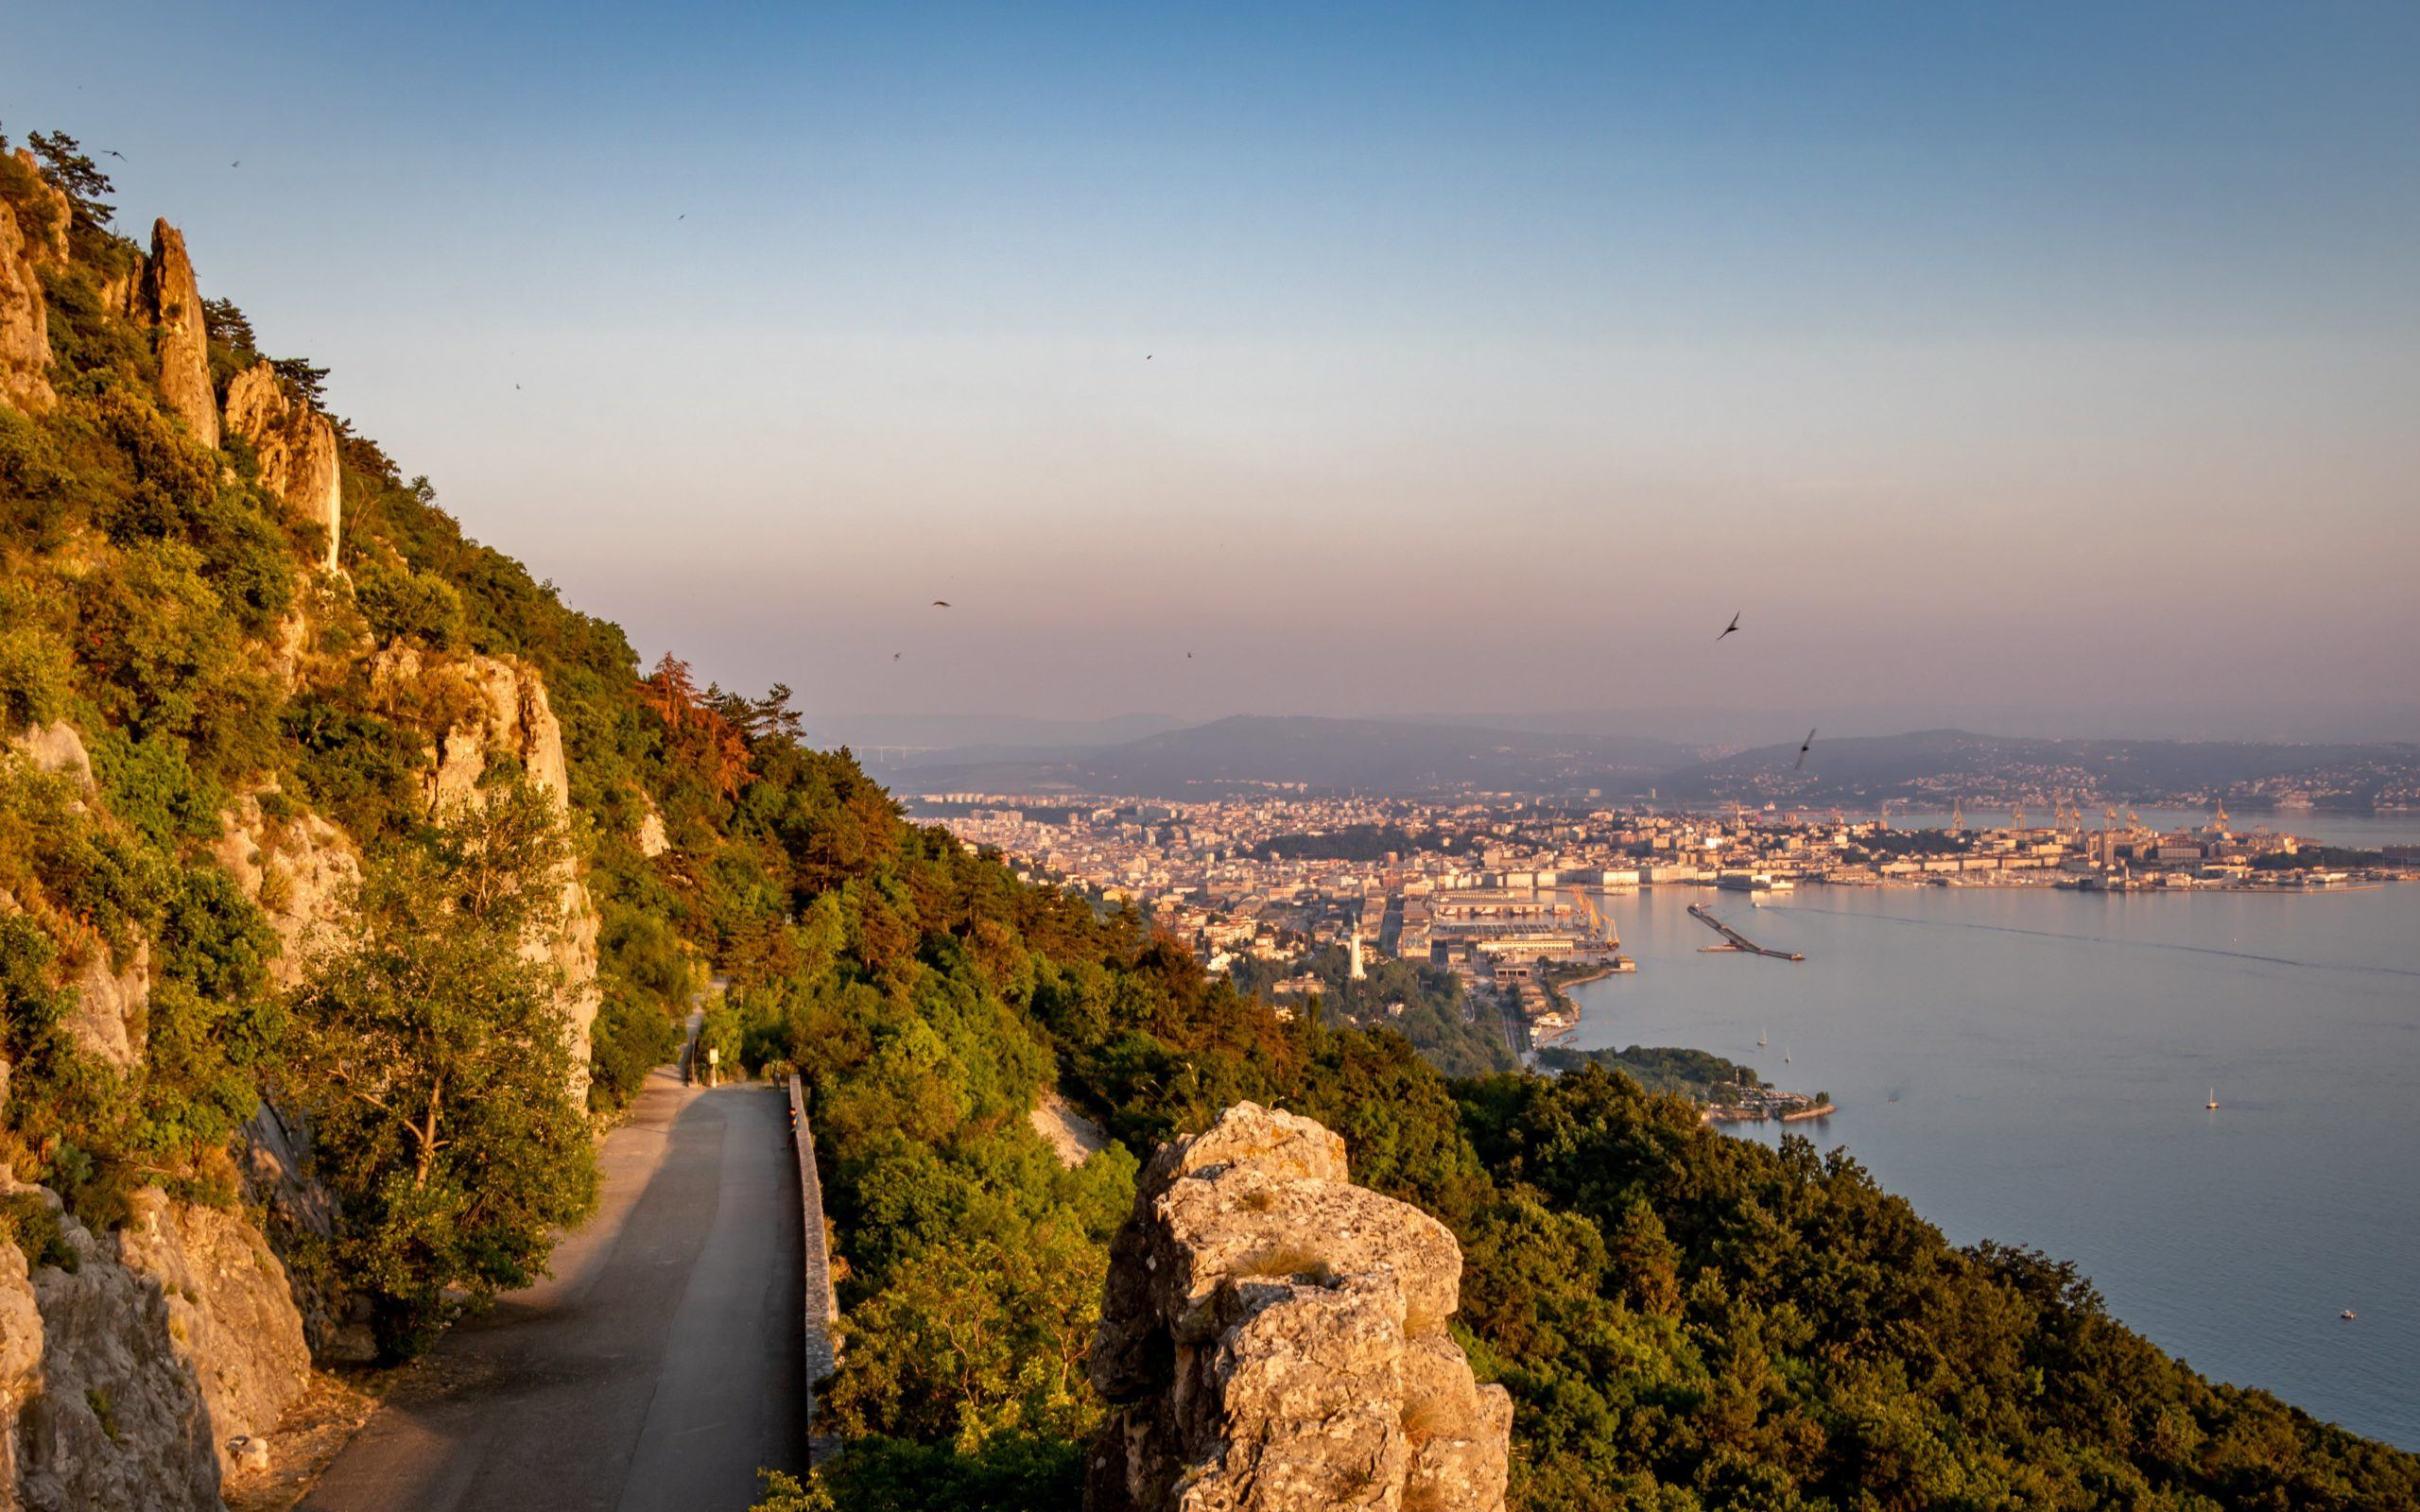 Sunset view in Trieste at Strada Napoleonica